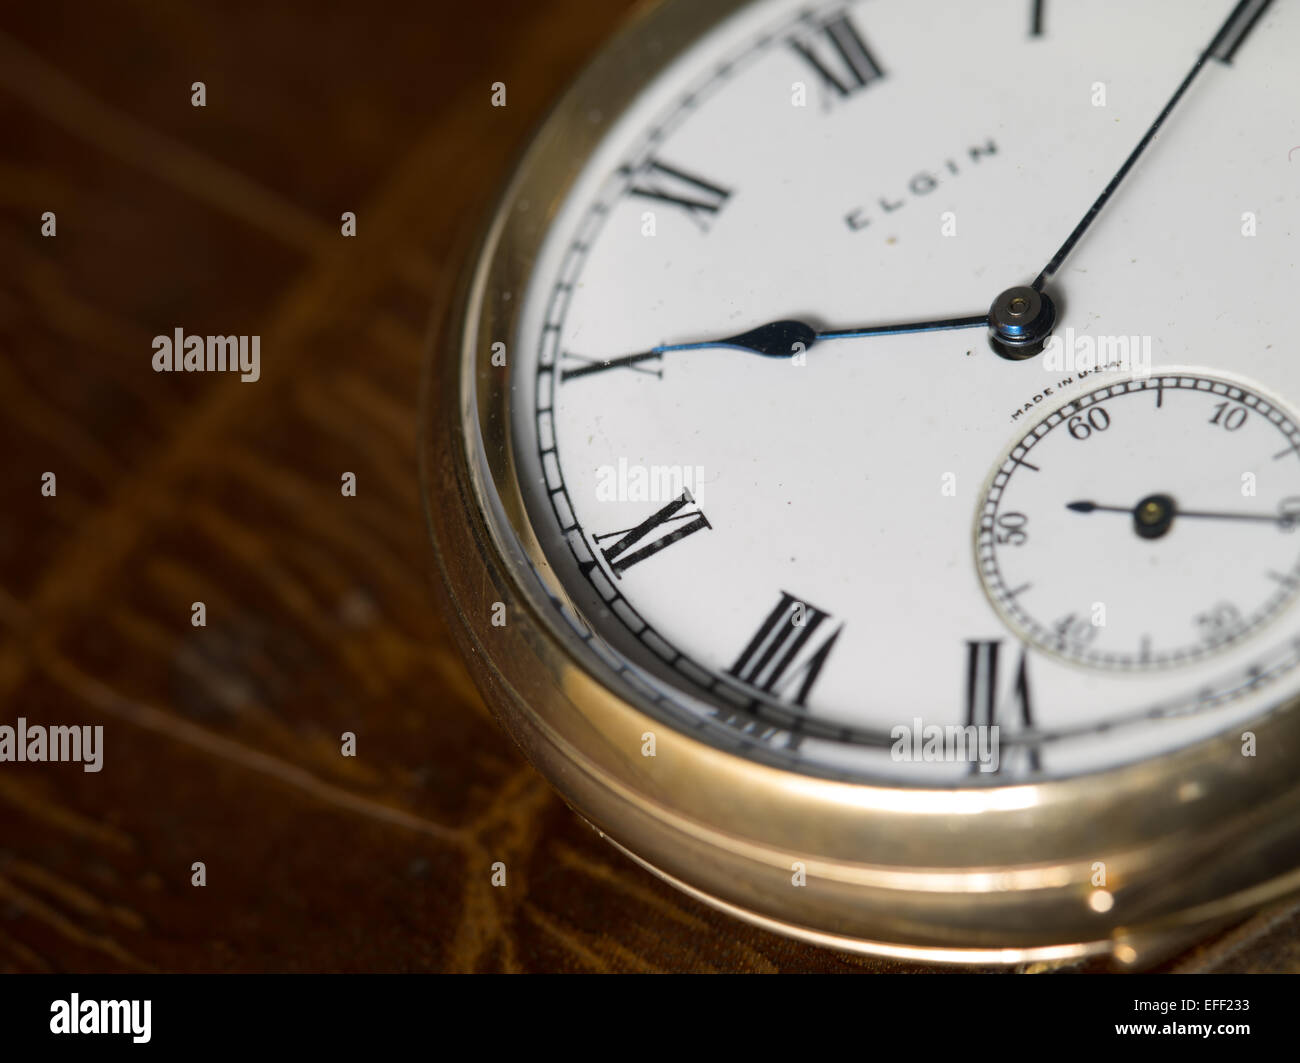 Elgin gold pocket watch - Stock Image